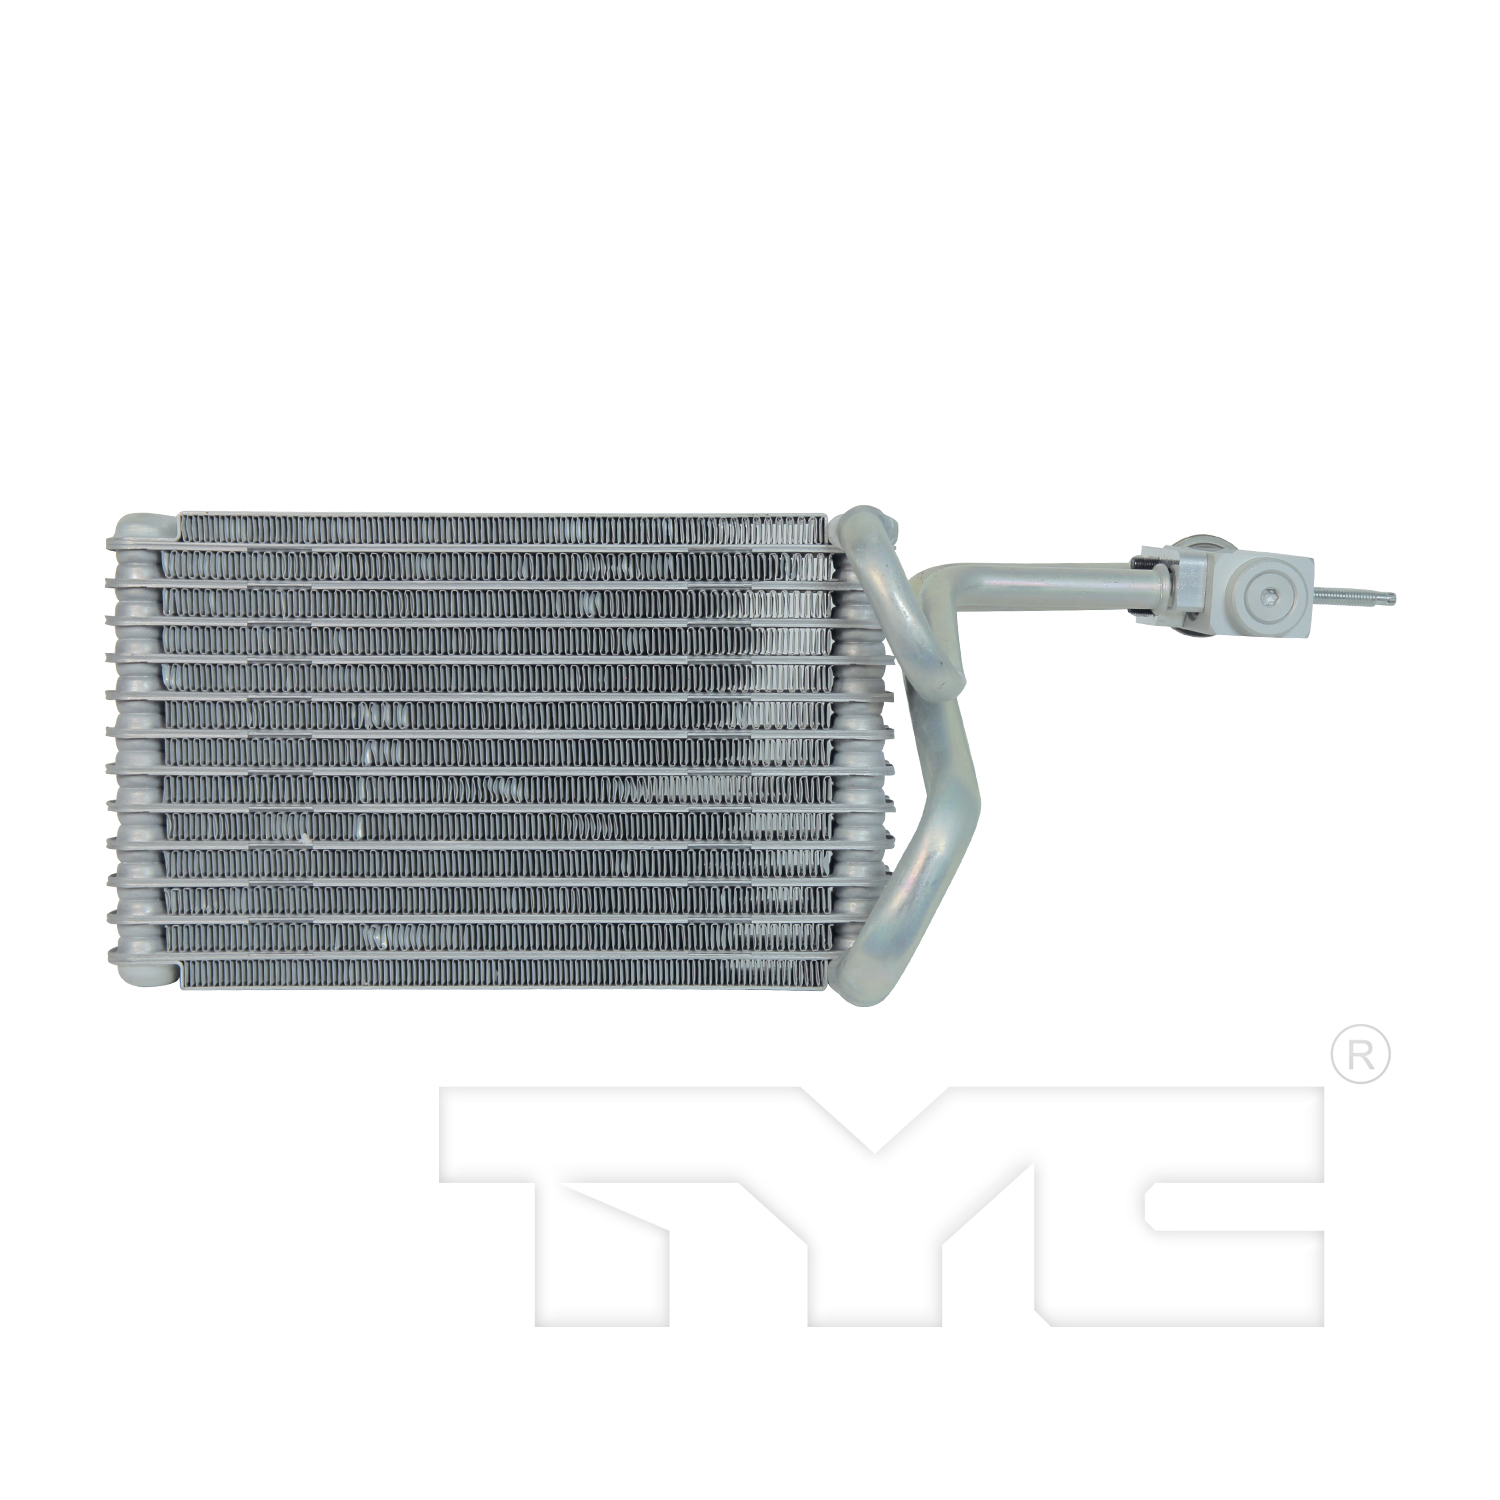 NEW Replacement REAR EVAPORATOR 68057709AA FOR DODGE CHRYSLER MINIVAN 2008 2009 2010 2011